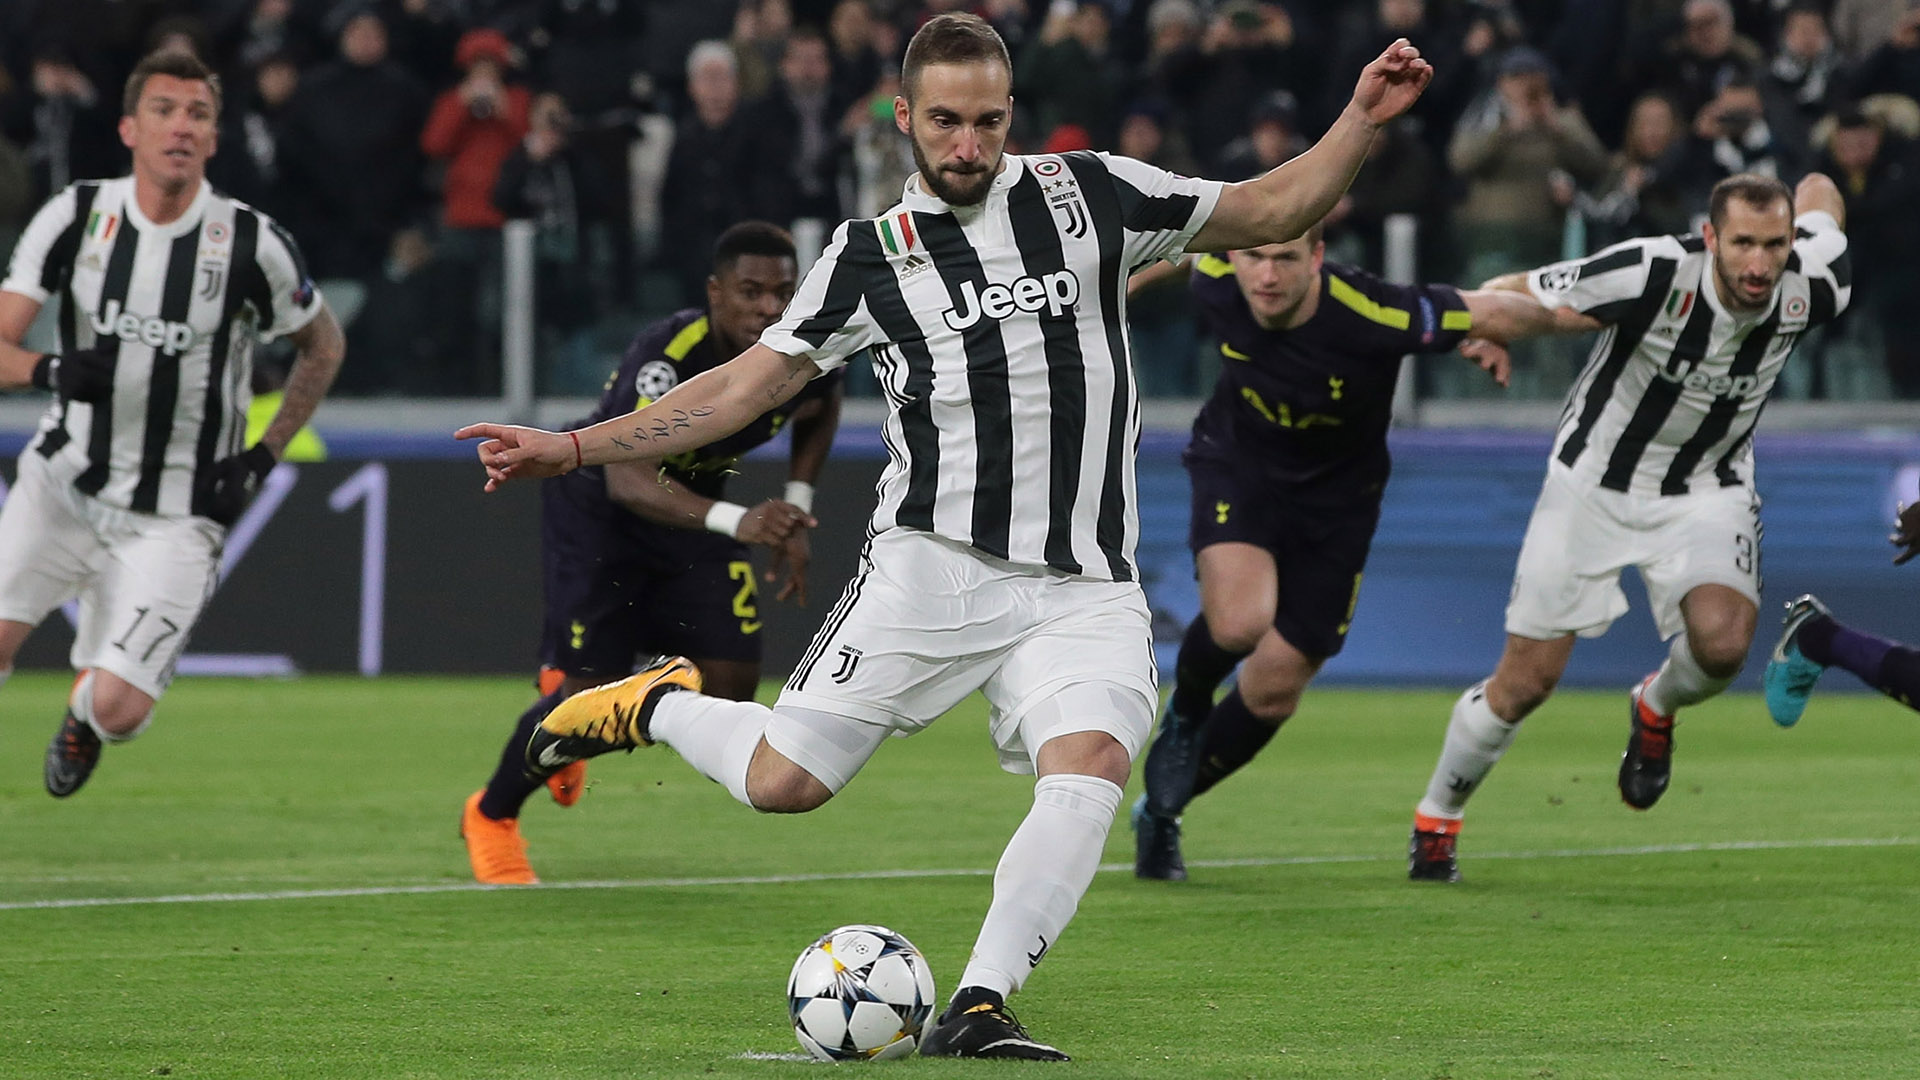 juventus vs tottenham - HD 1920×1080